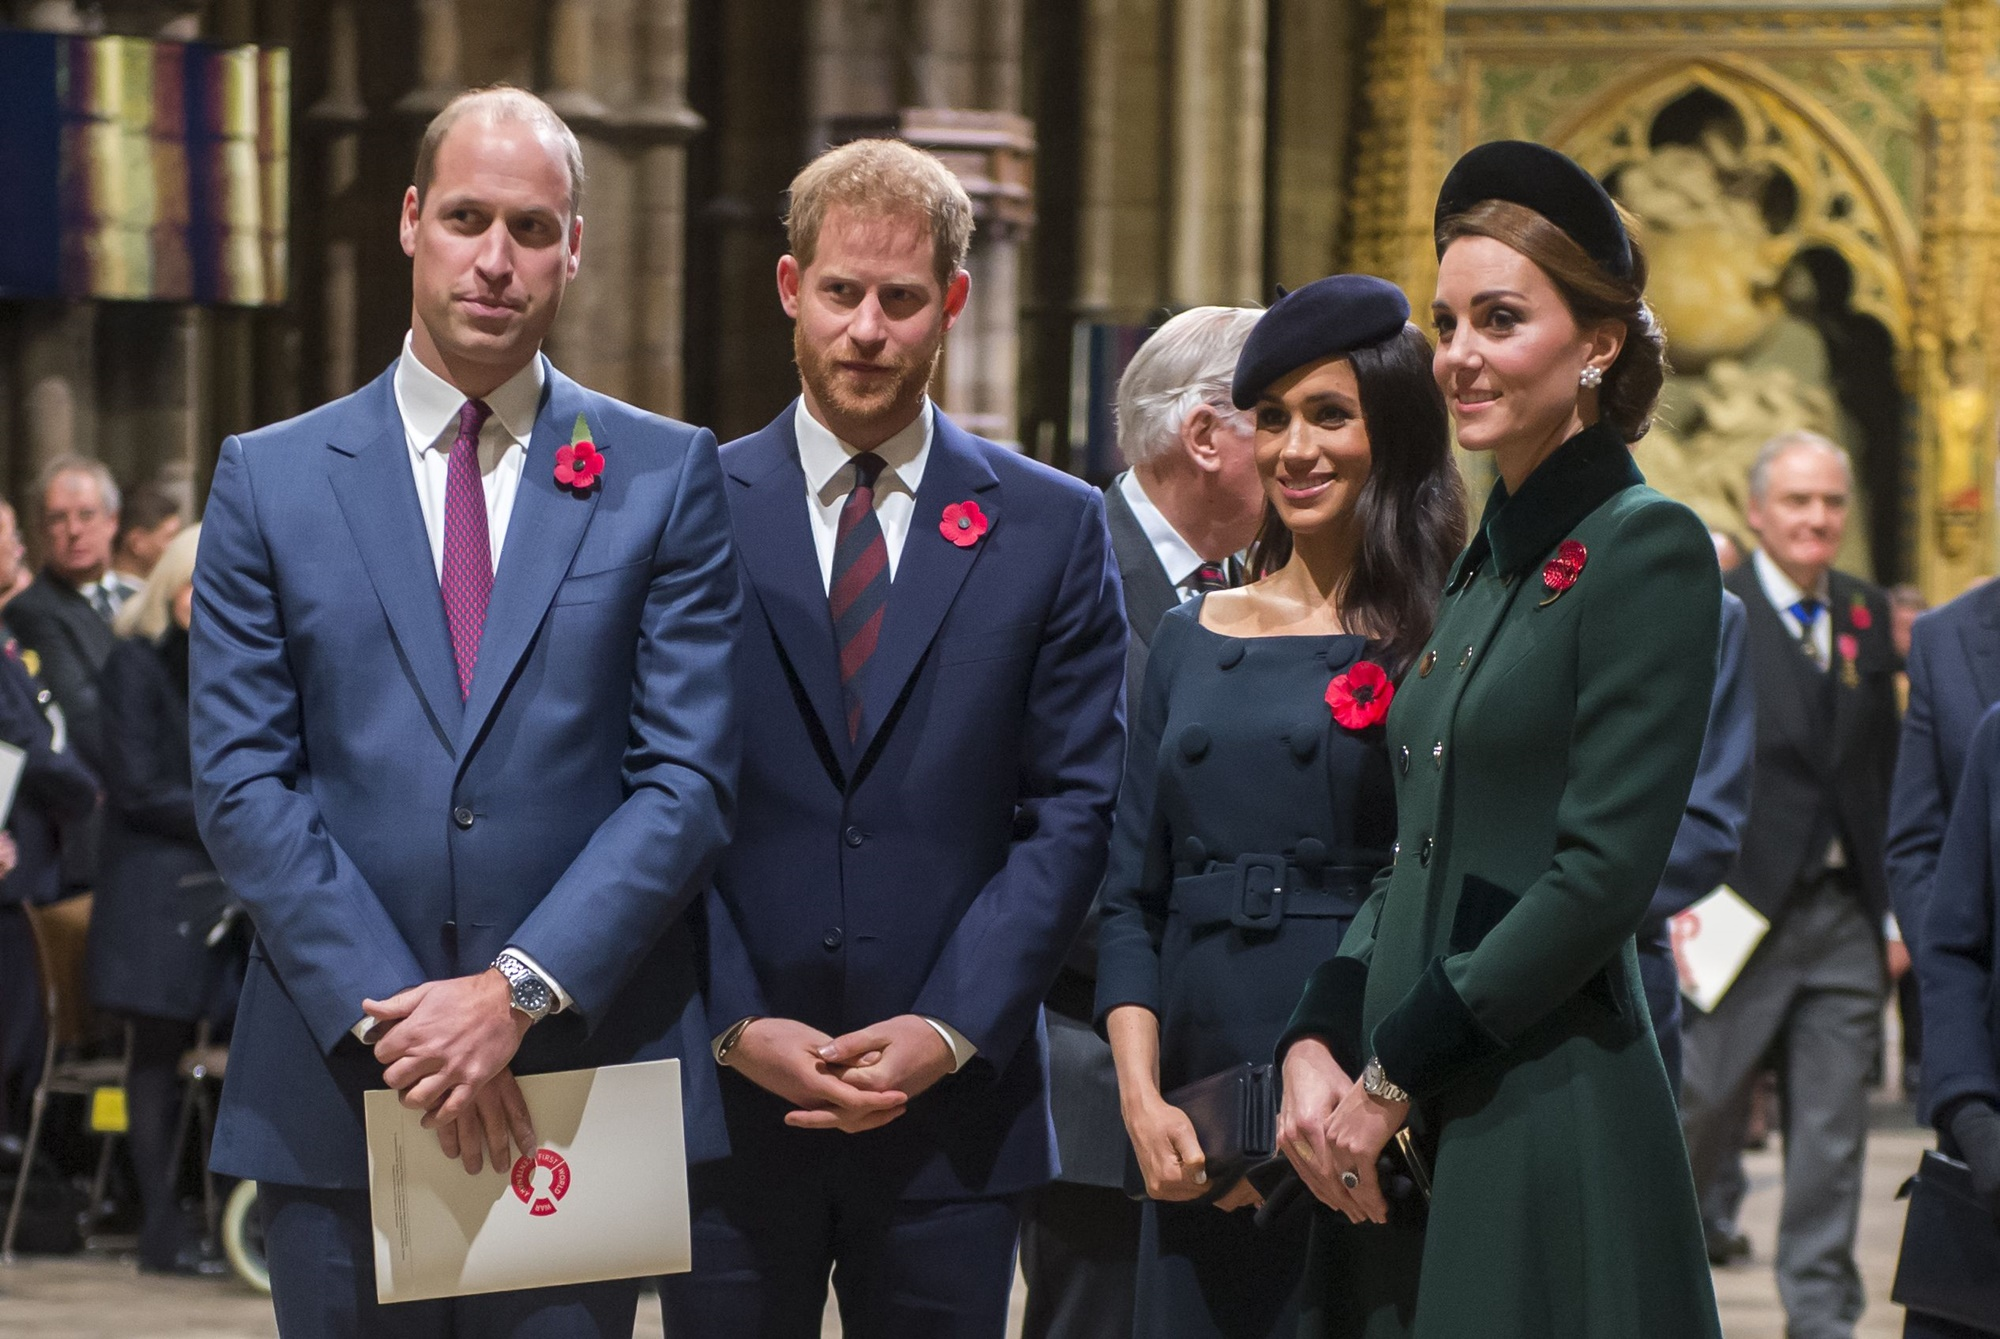 Prince William Prince Harry Kate Middleton Meghan Markle